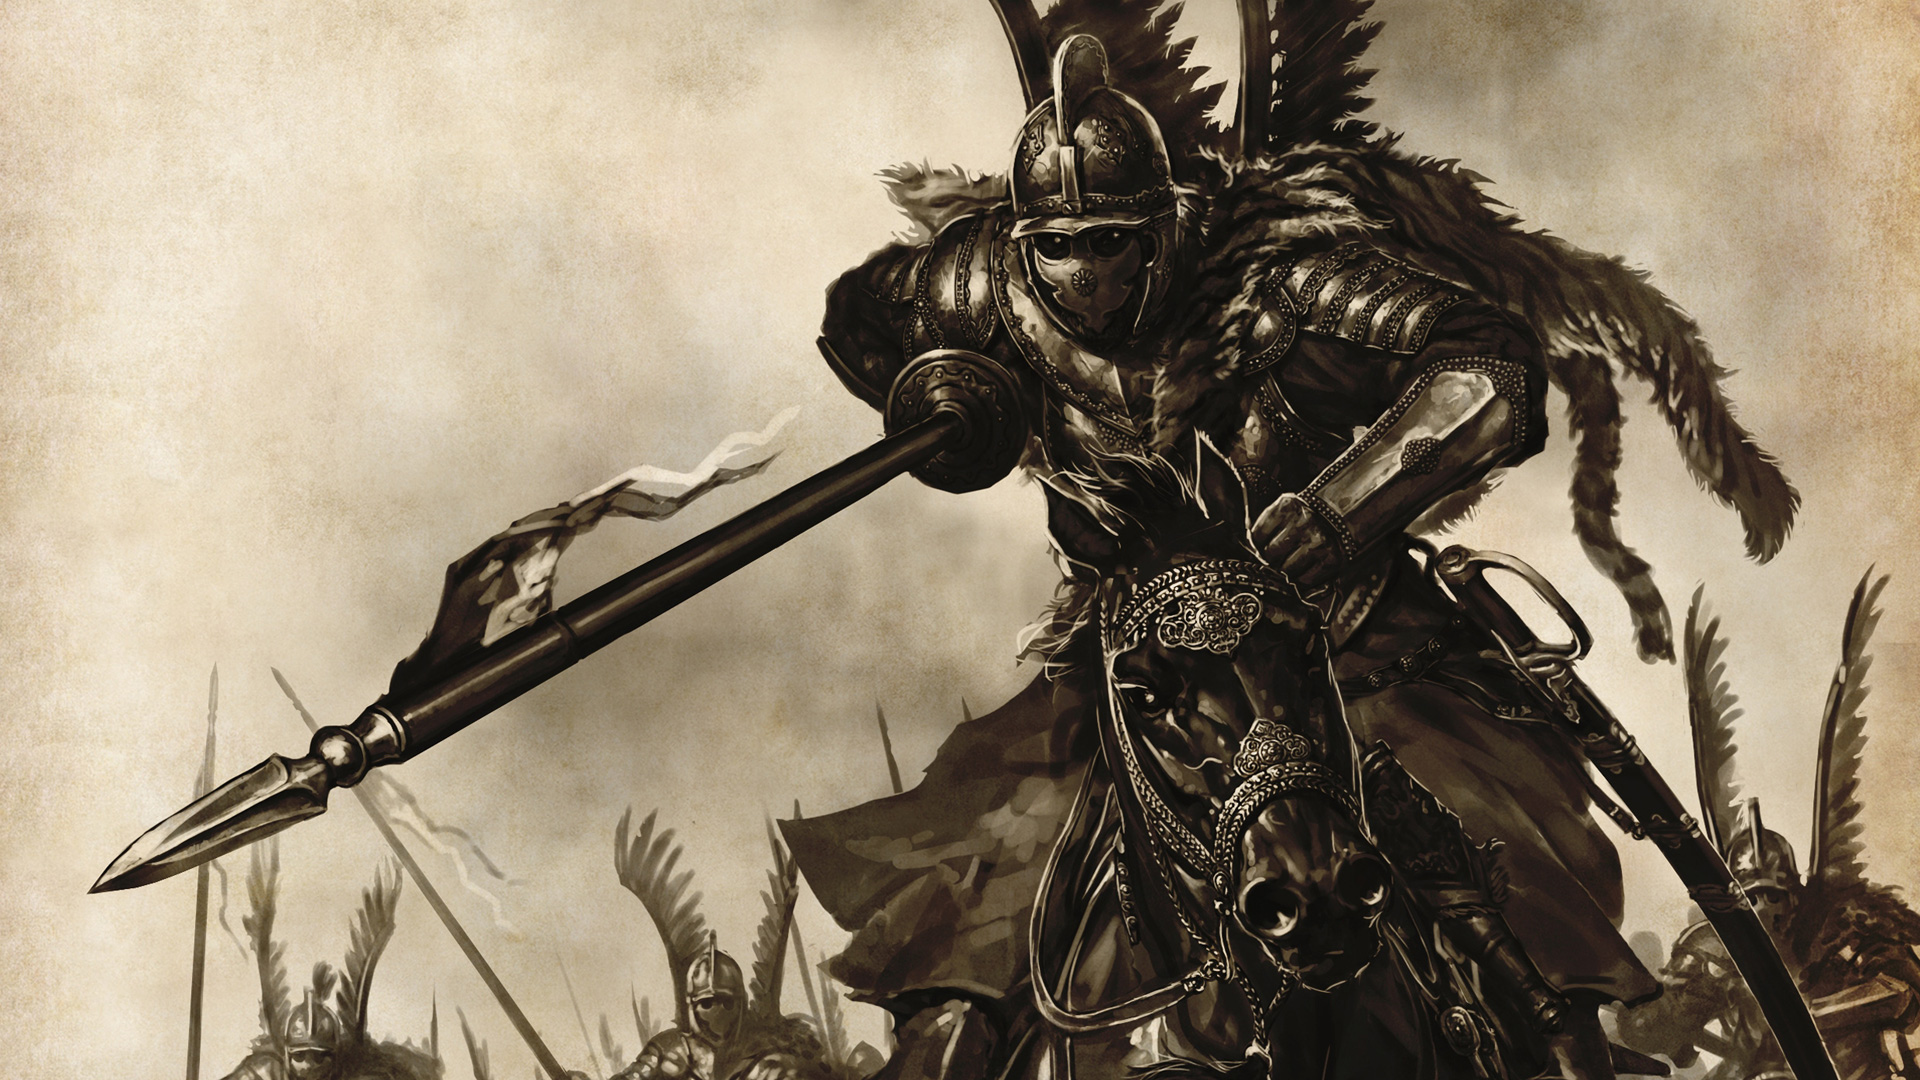 Free Mount&Blade: With Fire & Sword Wallpaper in 1920x1080